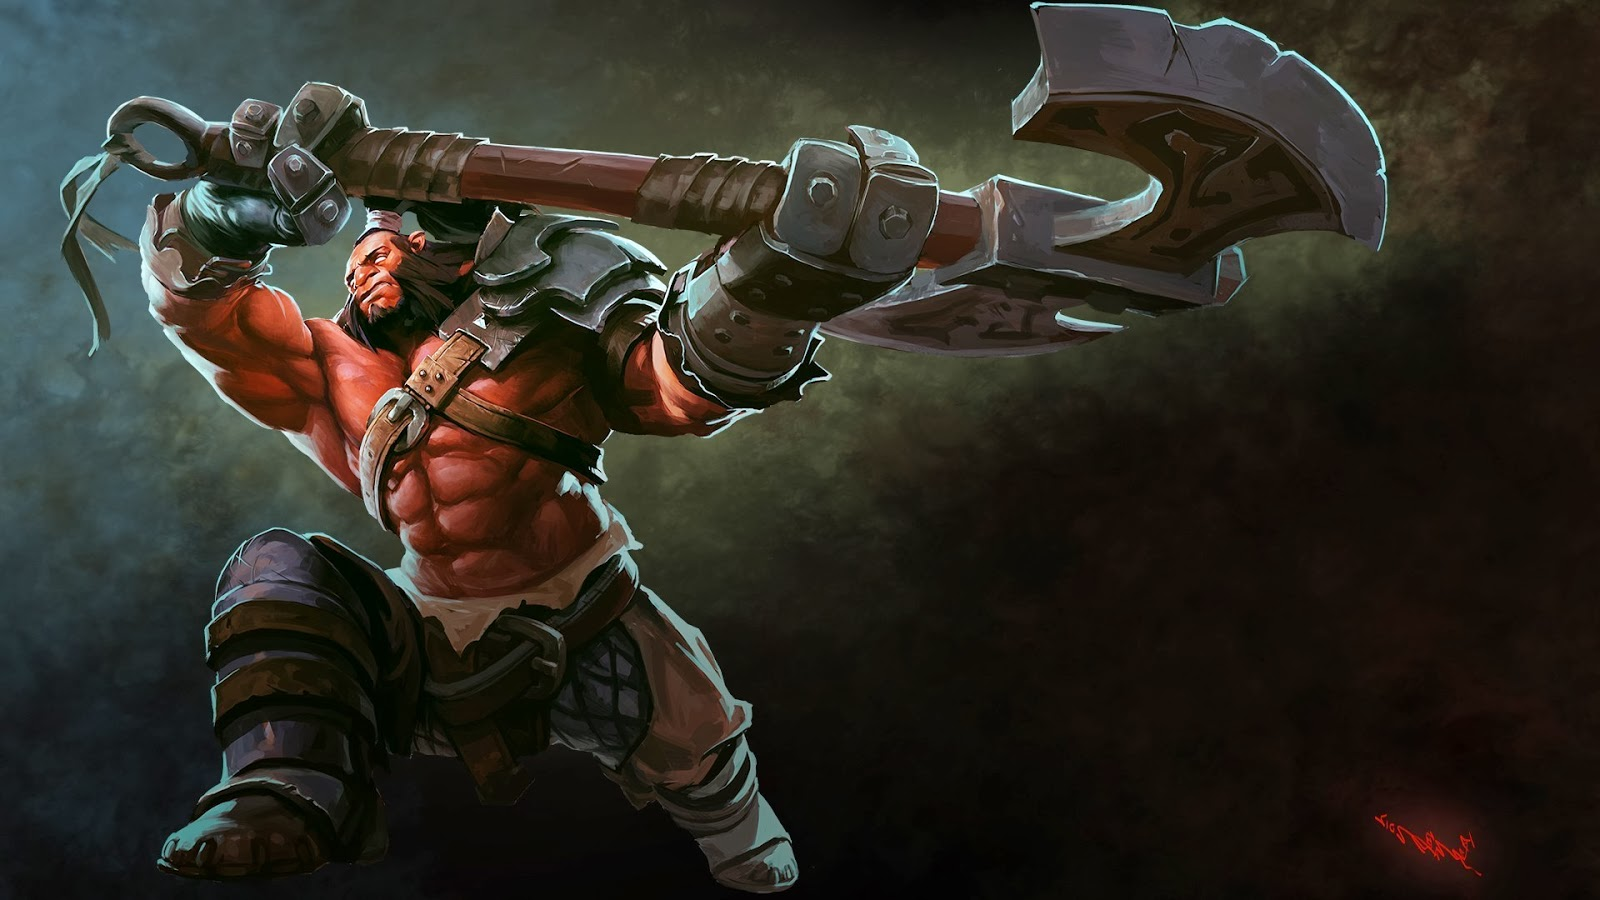 dota 2 wallpapers dota 2 wallpaper axe 1920x1080